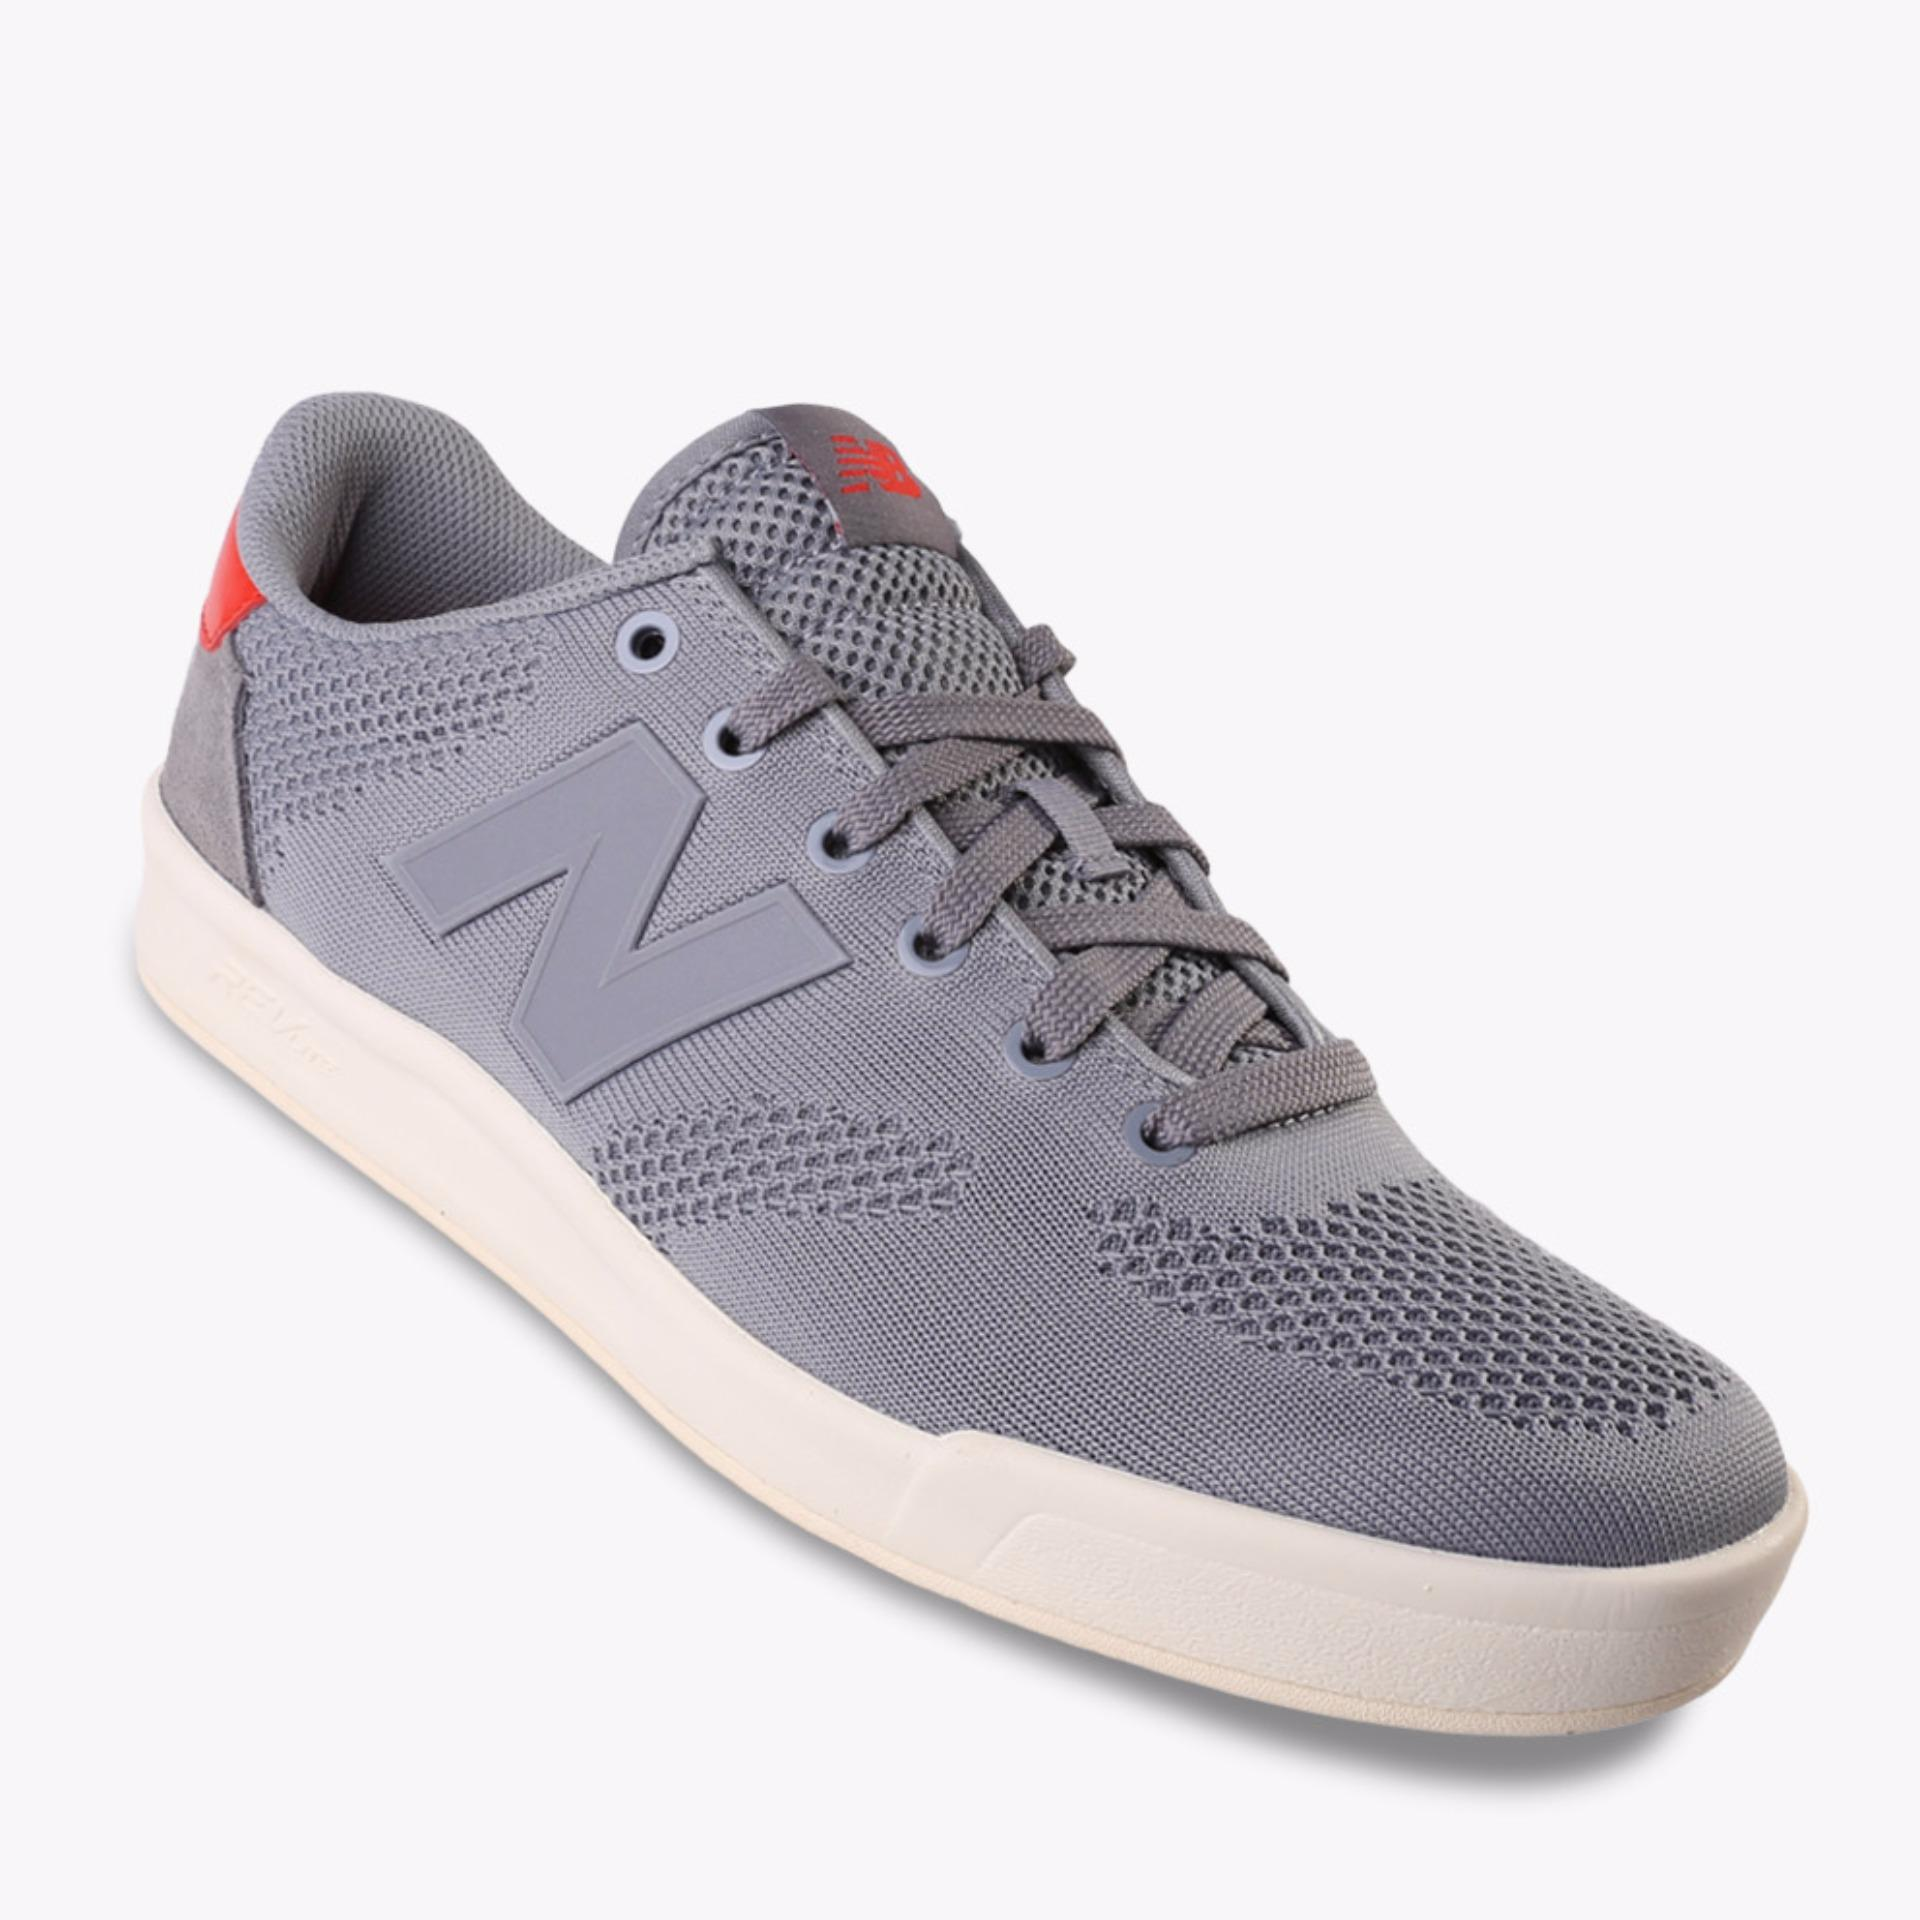 Harga New Balance 300 Re Engineered Men S Lifestyle Shoes Abu Abu Lengkap